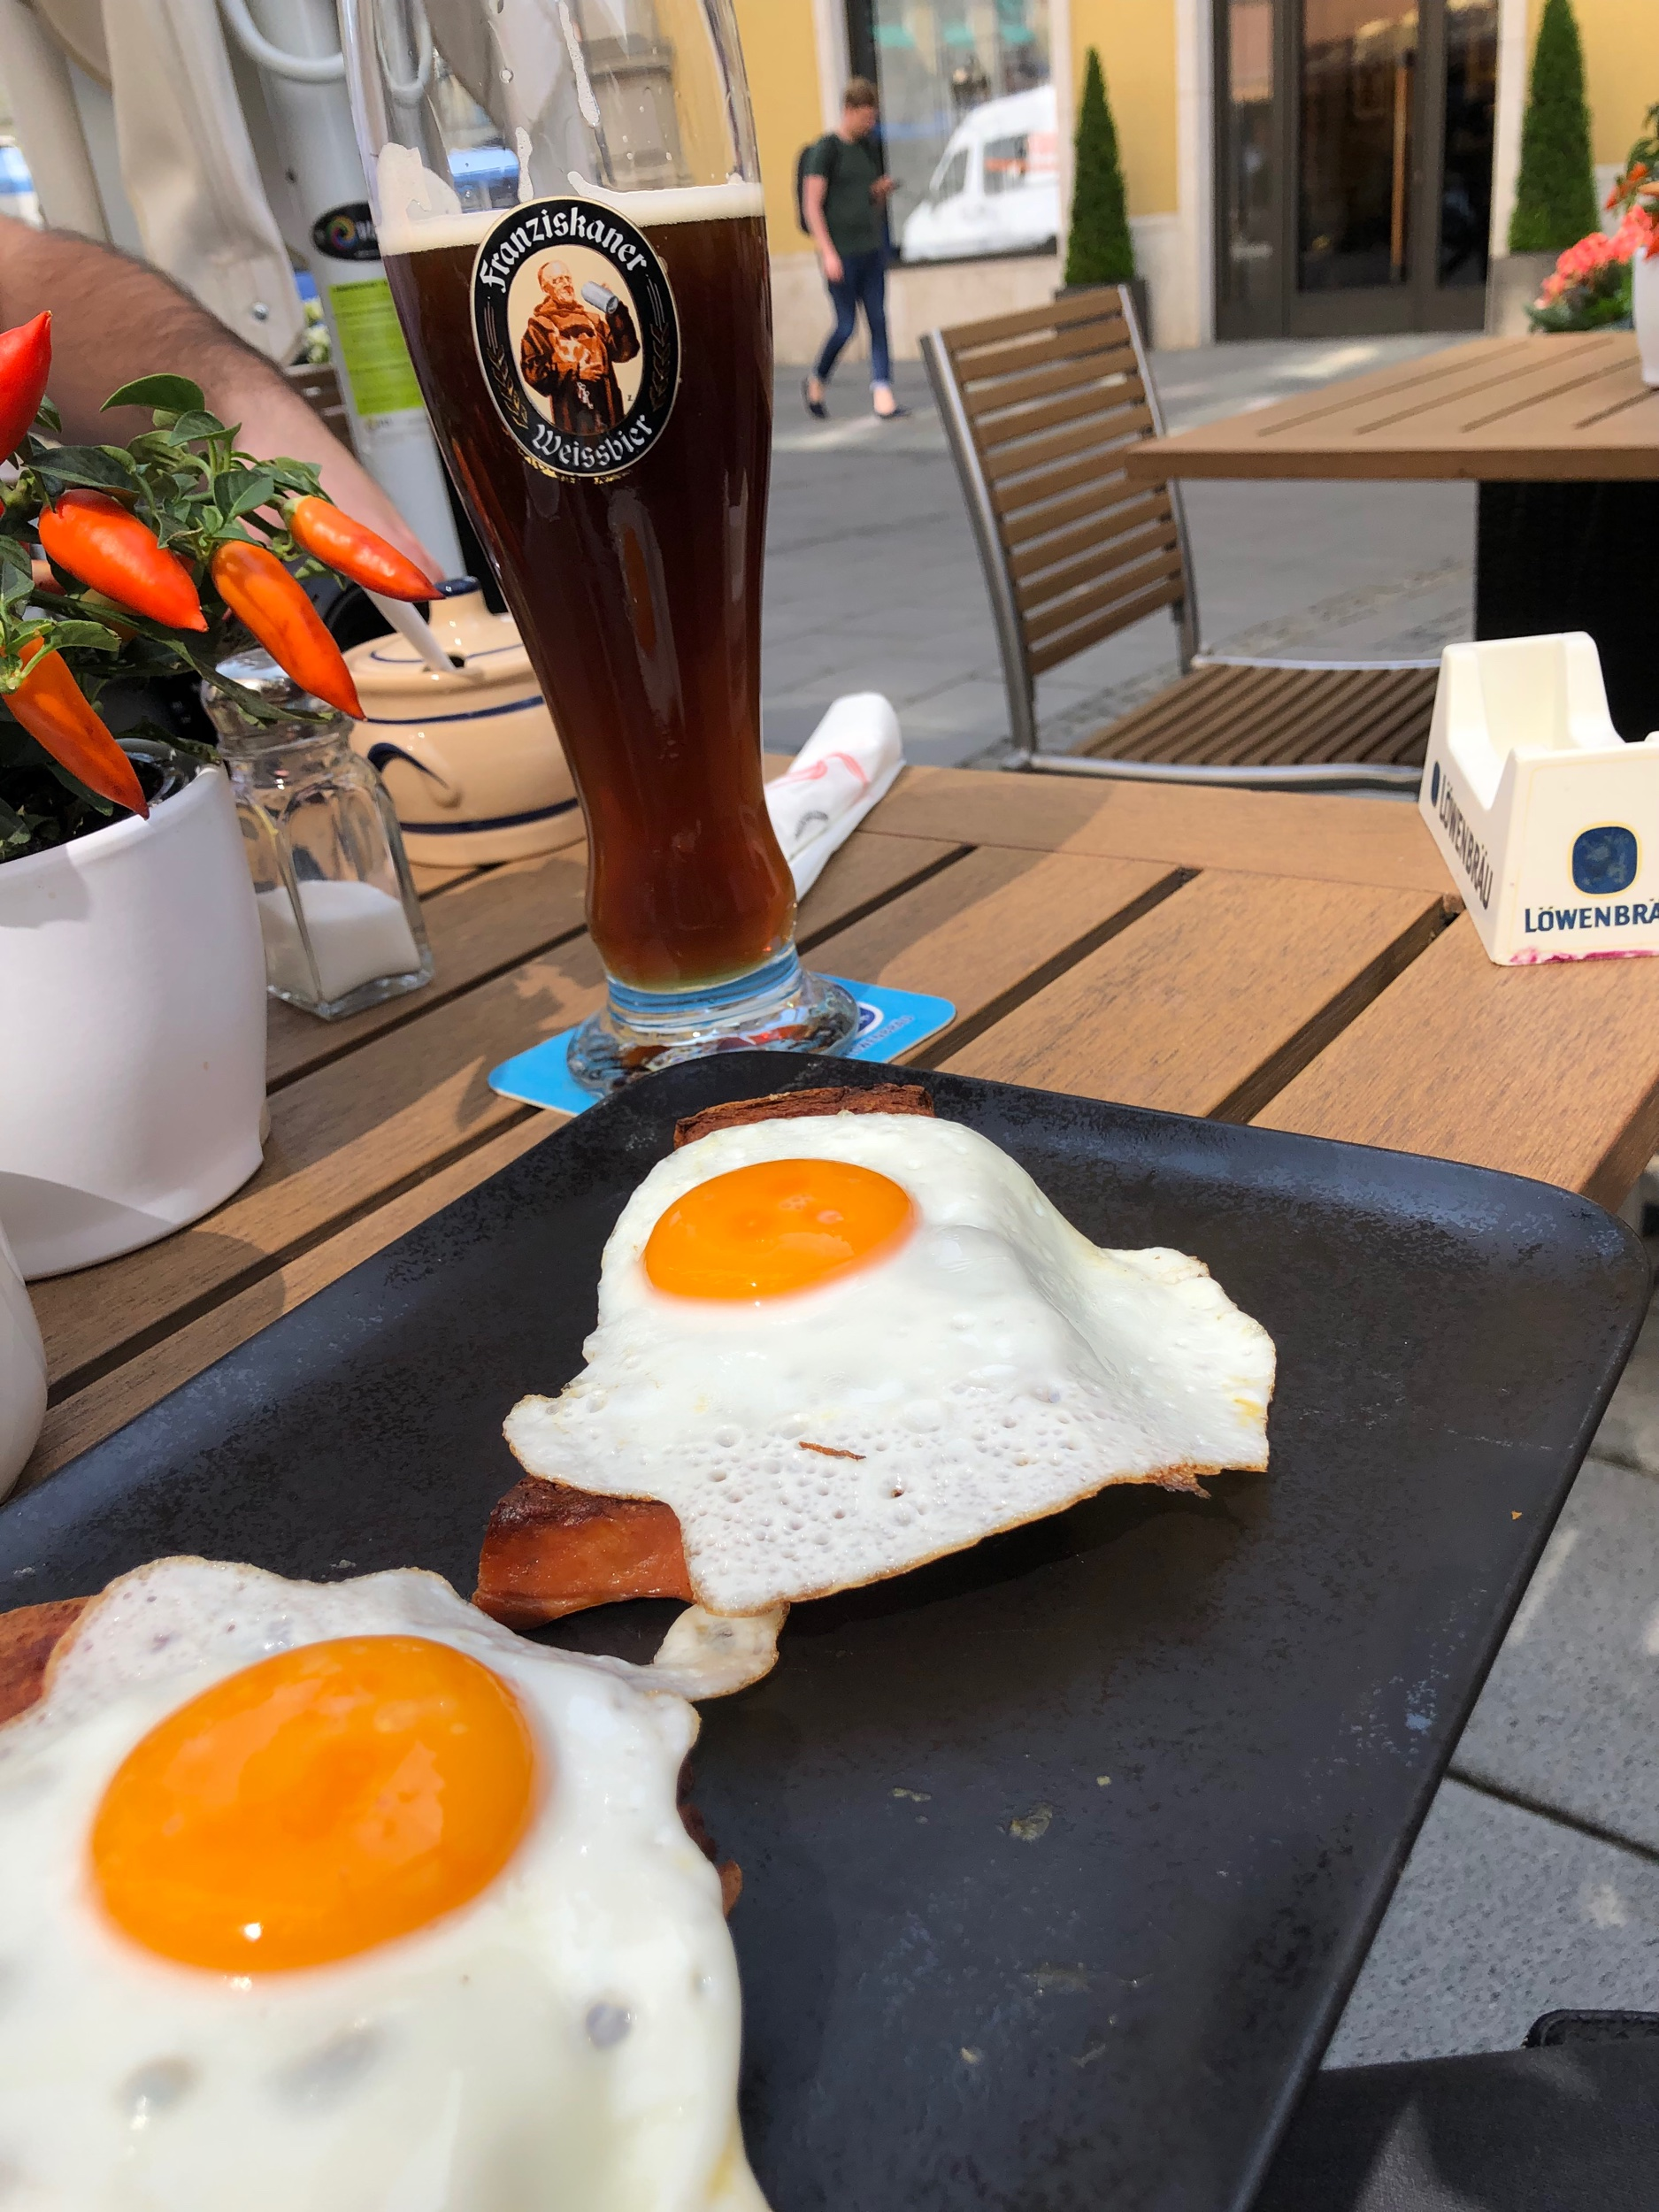 Only natural that breakfast in Munich comes with a Dunkles Weissbier!